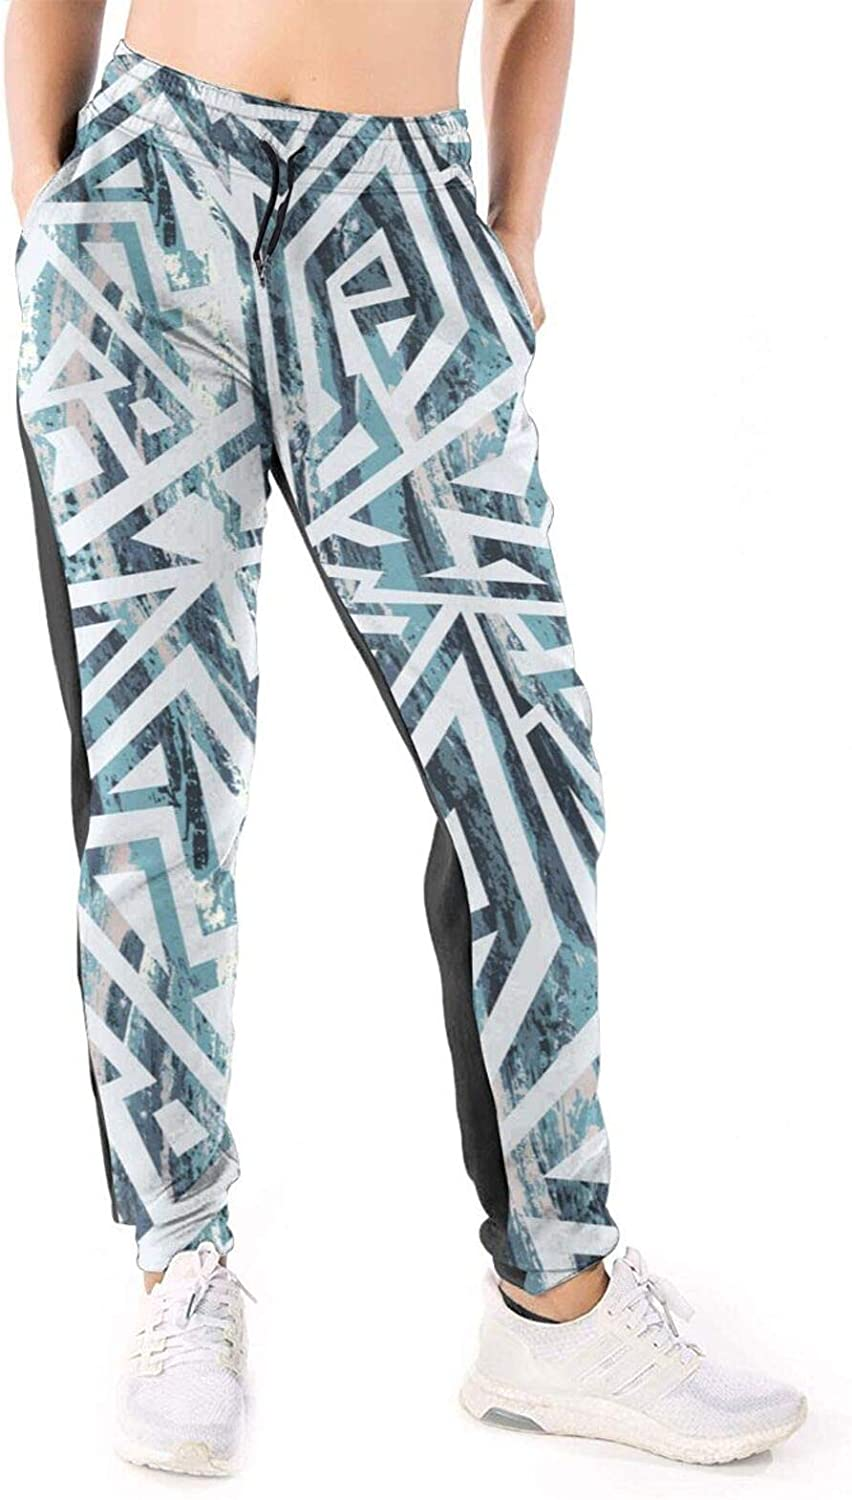 LONEA Women Joggers Pants Blue Color Tribal Grunge Pattern Athletic Sweatpants with Pockets Casual Trousers Baggy